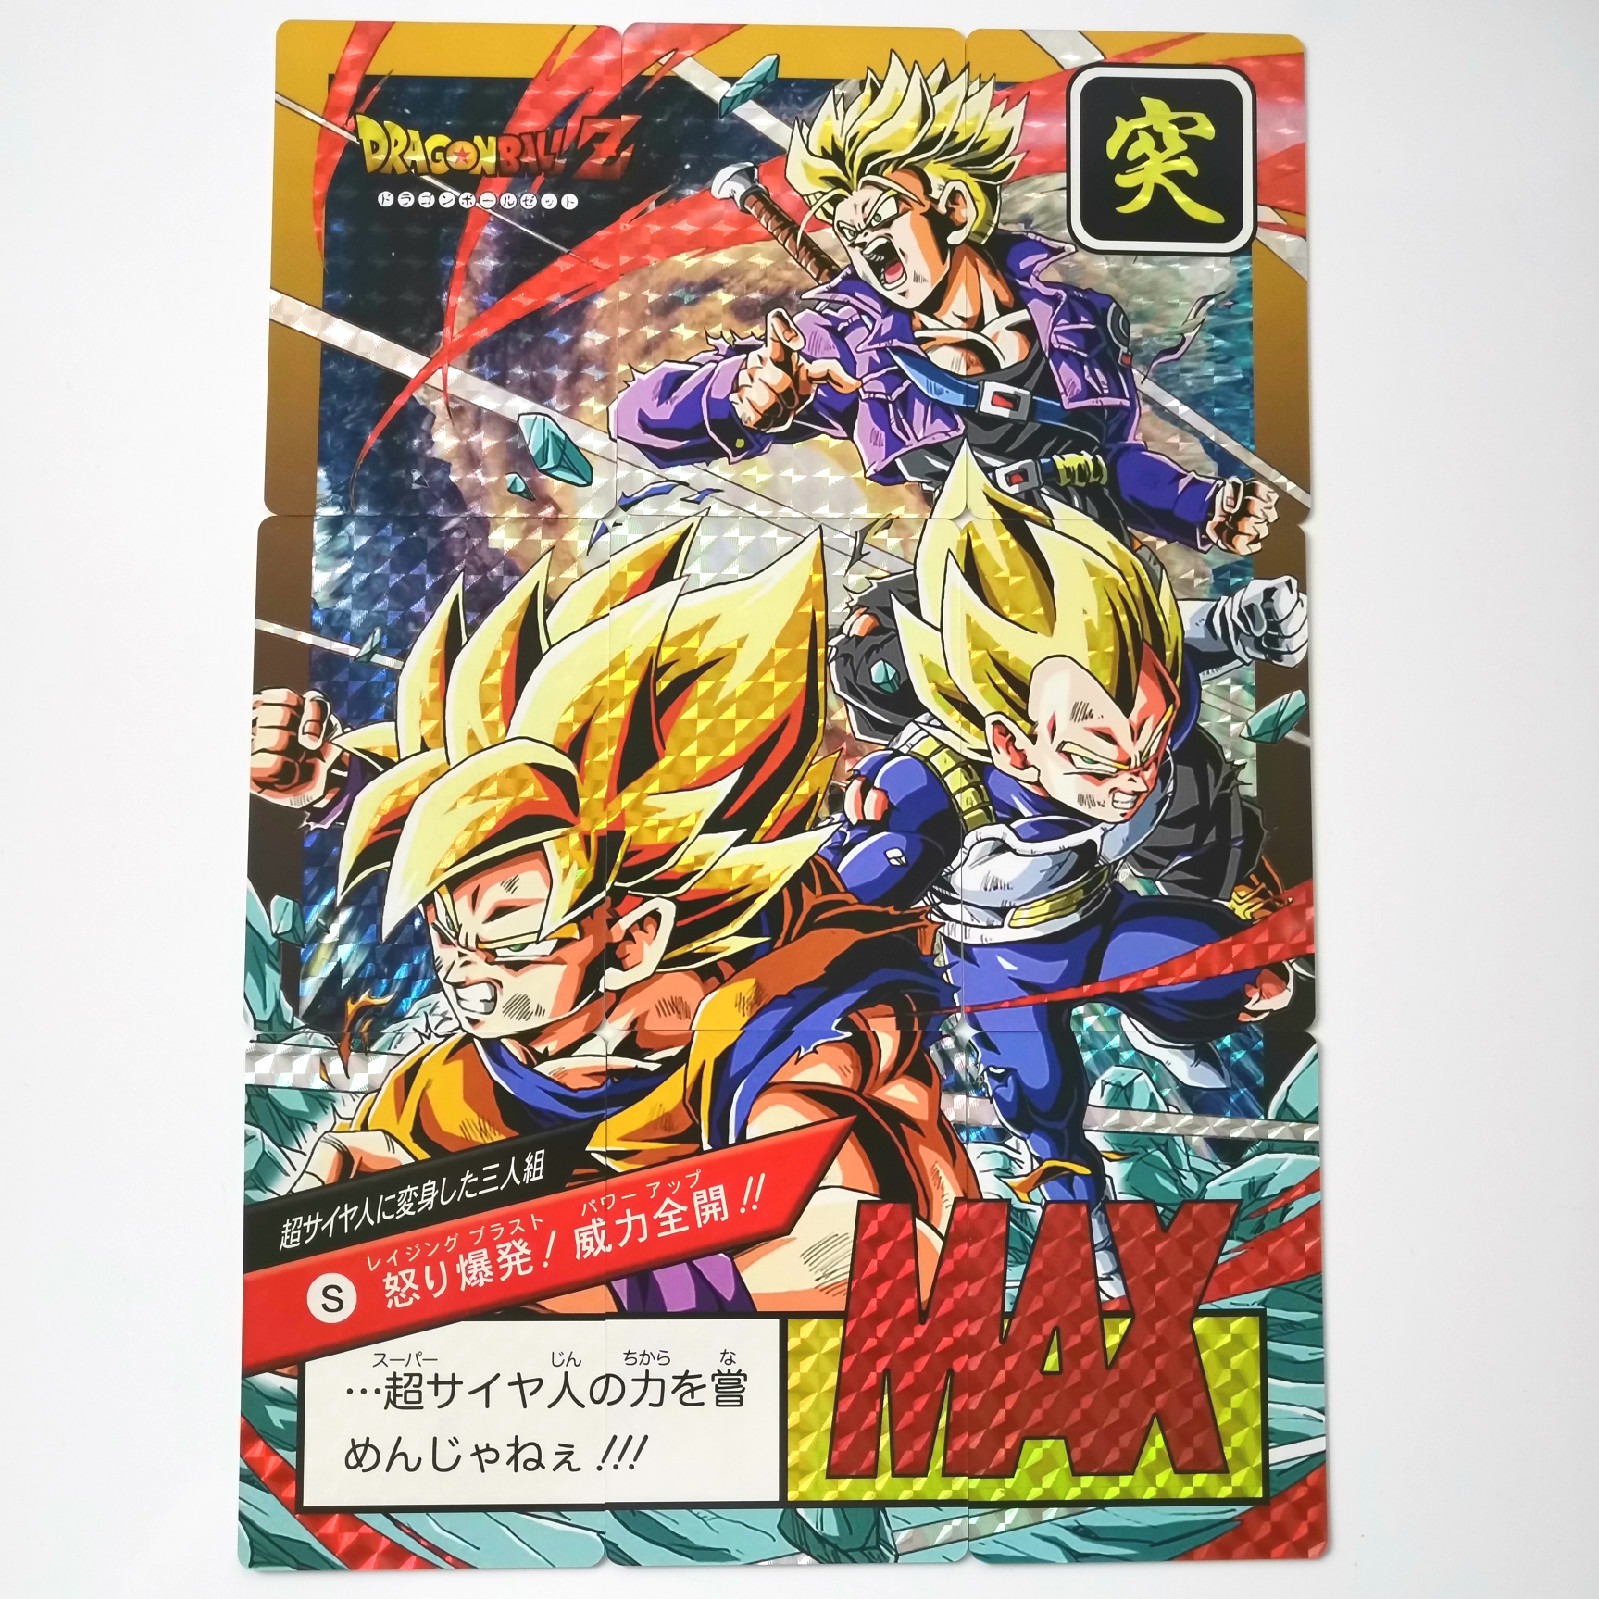 10pcs/set 9 In 1 Super Dragon Ball Z Heroes Battle Card Goku Vegeta Trunks Super Game Collection Cards